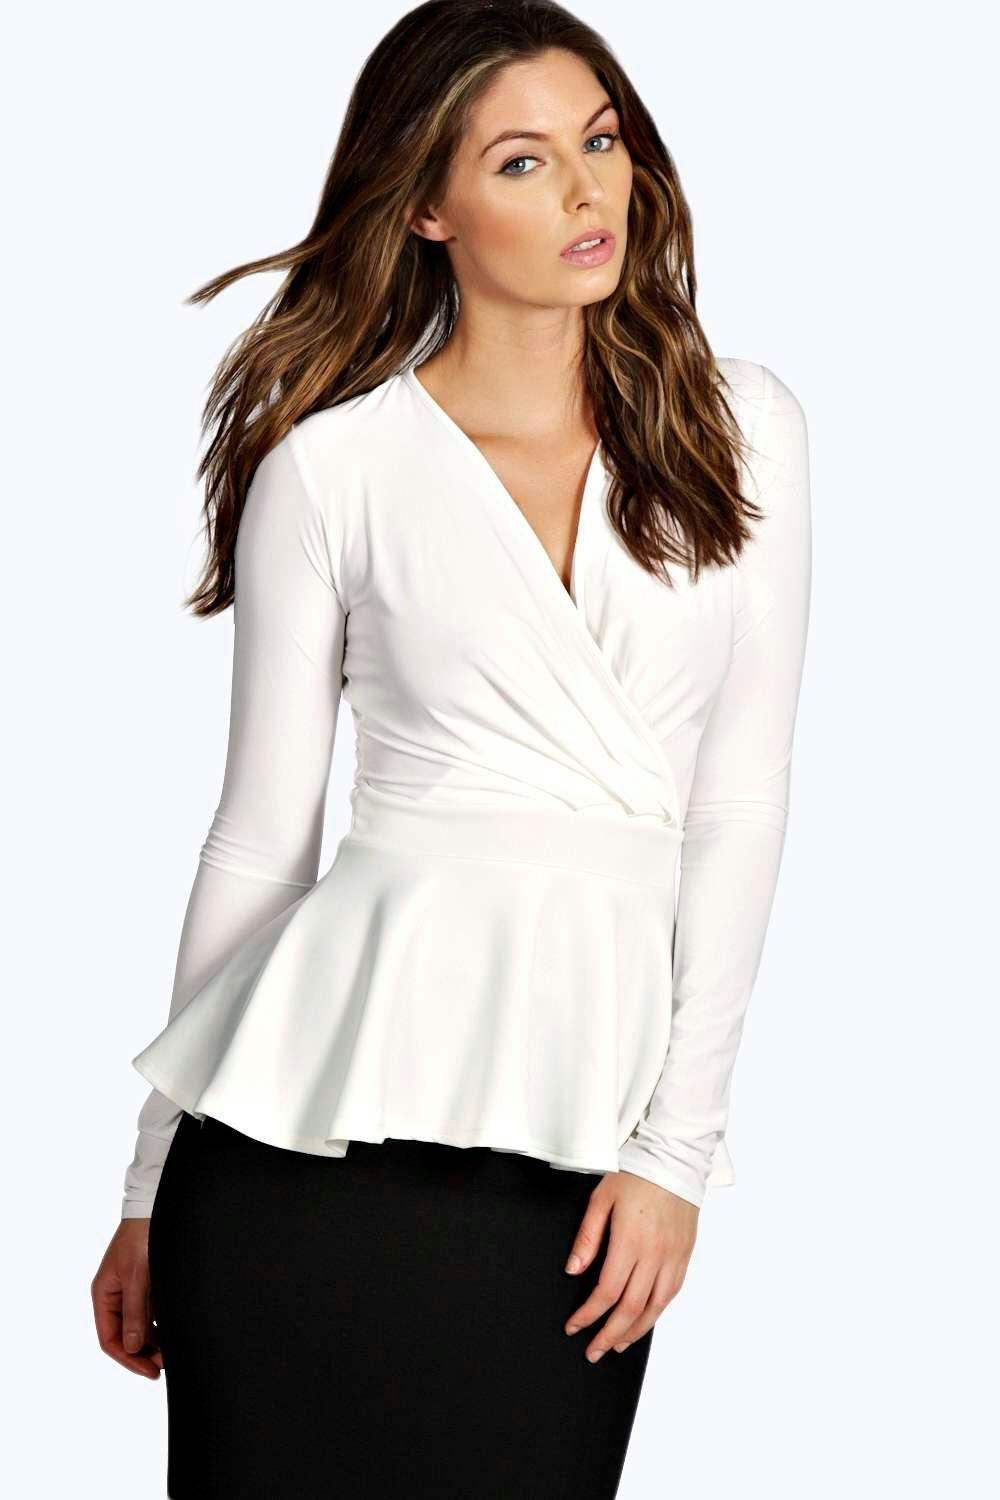 Peplum Tops ($ - $): 30 of items - Shop Peplum Tops from ALL your favorite stores & find HUGE SAVINGS up to 80% off Peplum Tops, including GREAT DEALS like